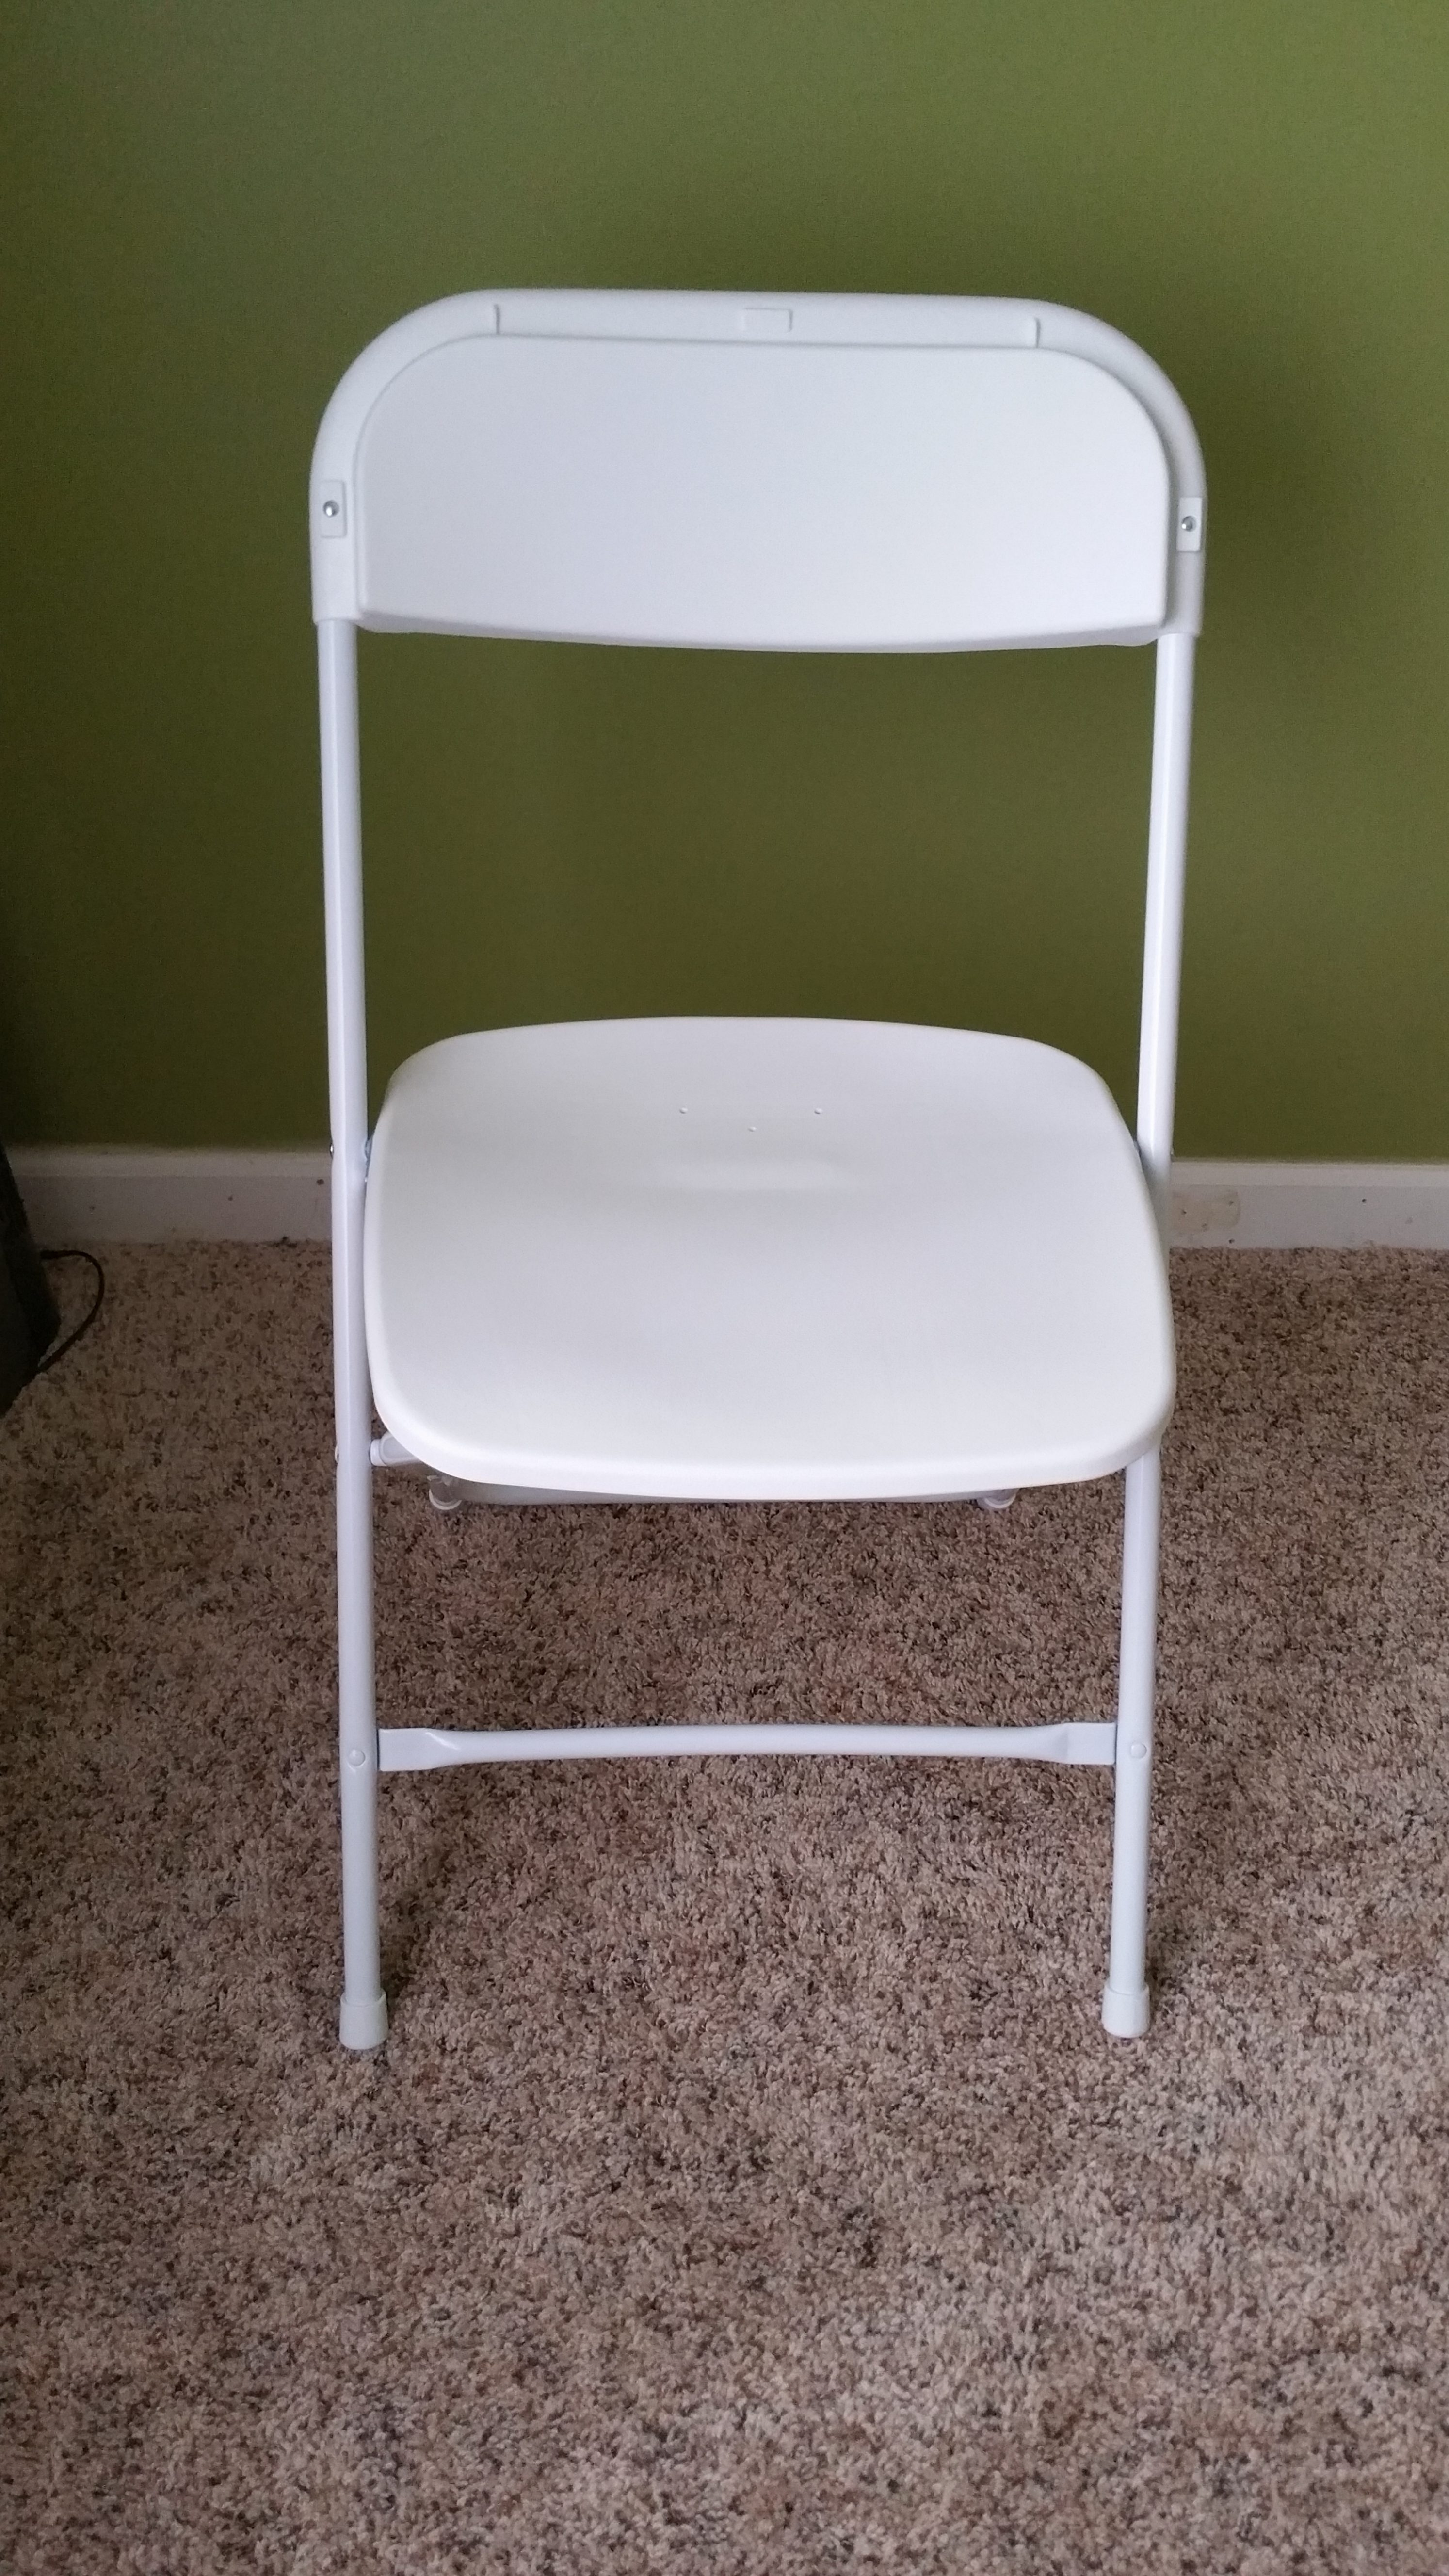 Swell Folding Chairs White Hercules 500 Lb Capacity Ocoug Best Dining Table And Chair Ideas Images Ocougorg